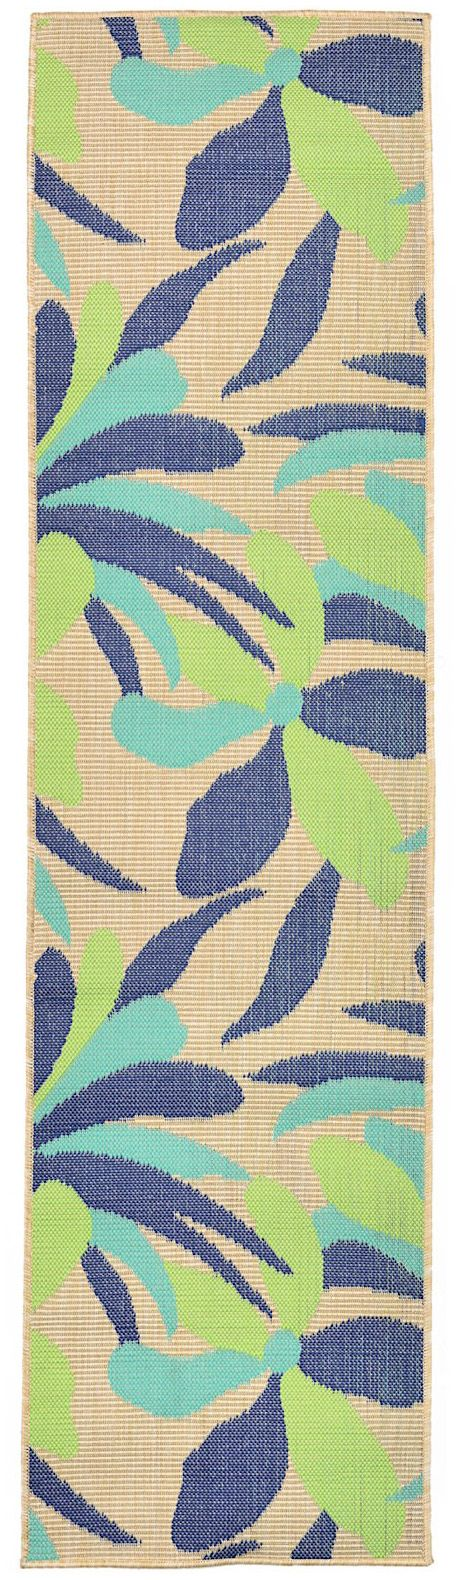 trans ocean playa country & floral area rug collection